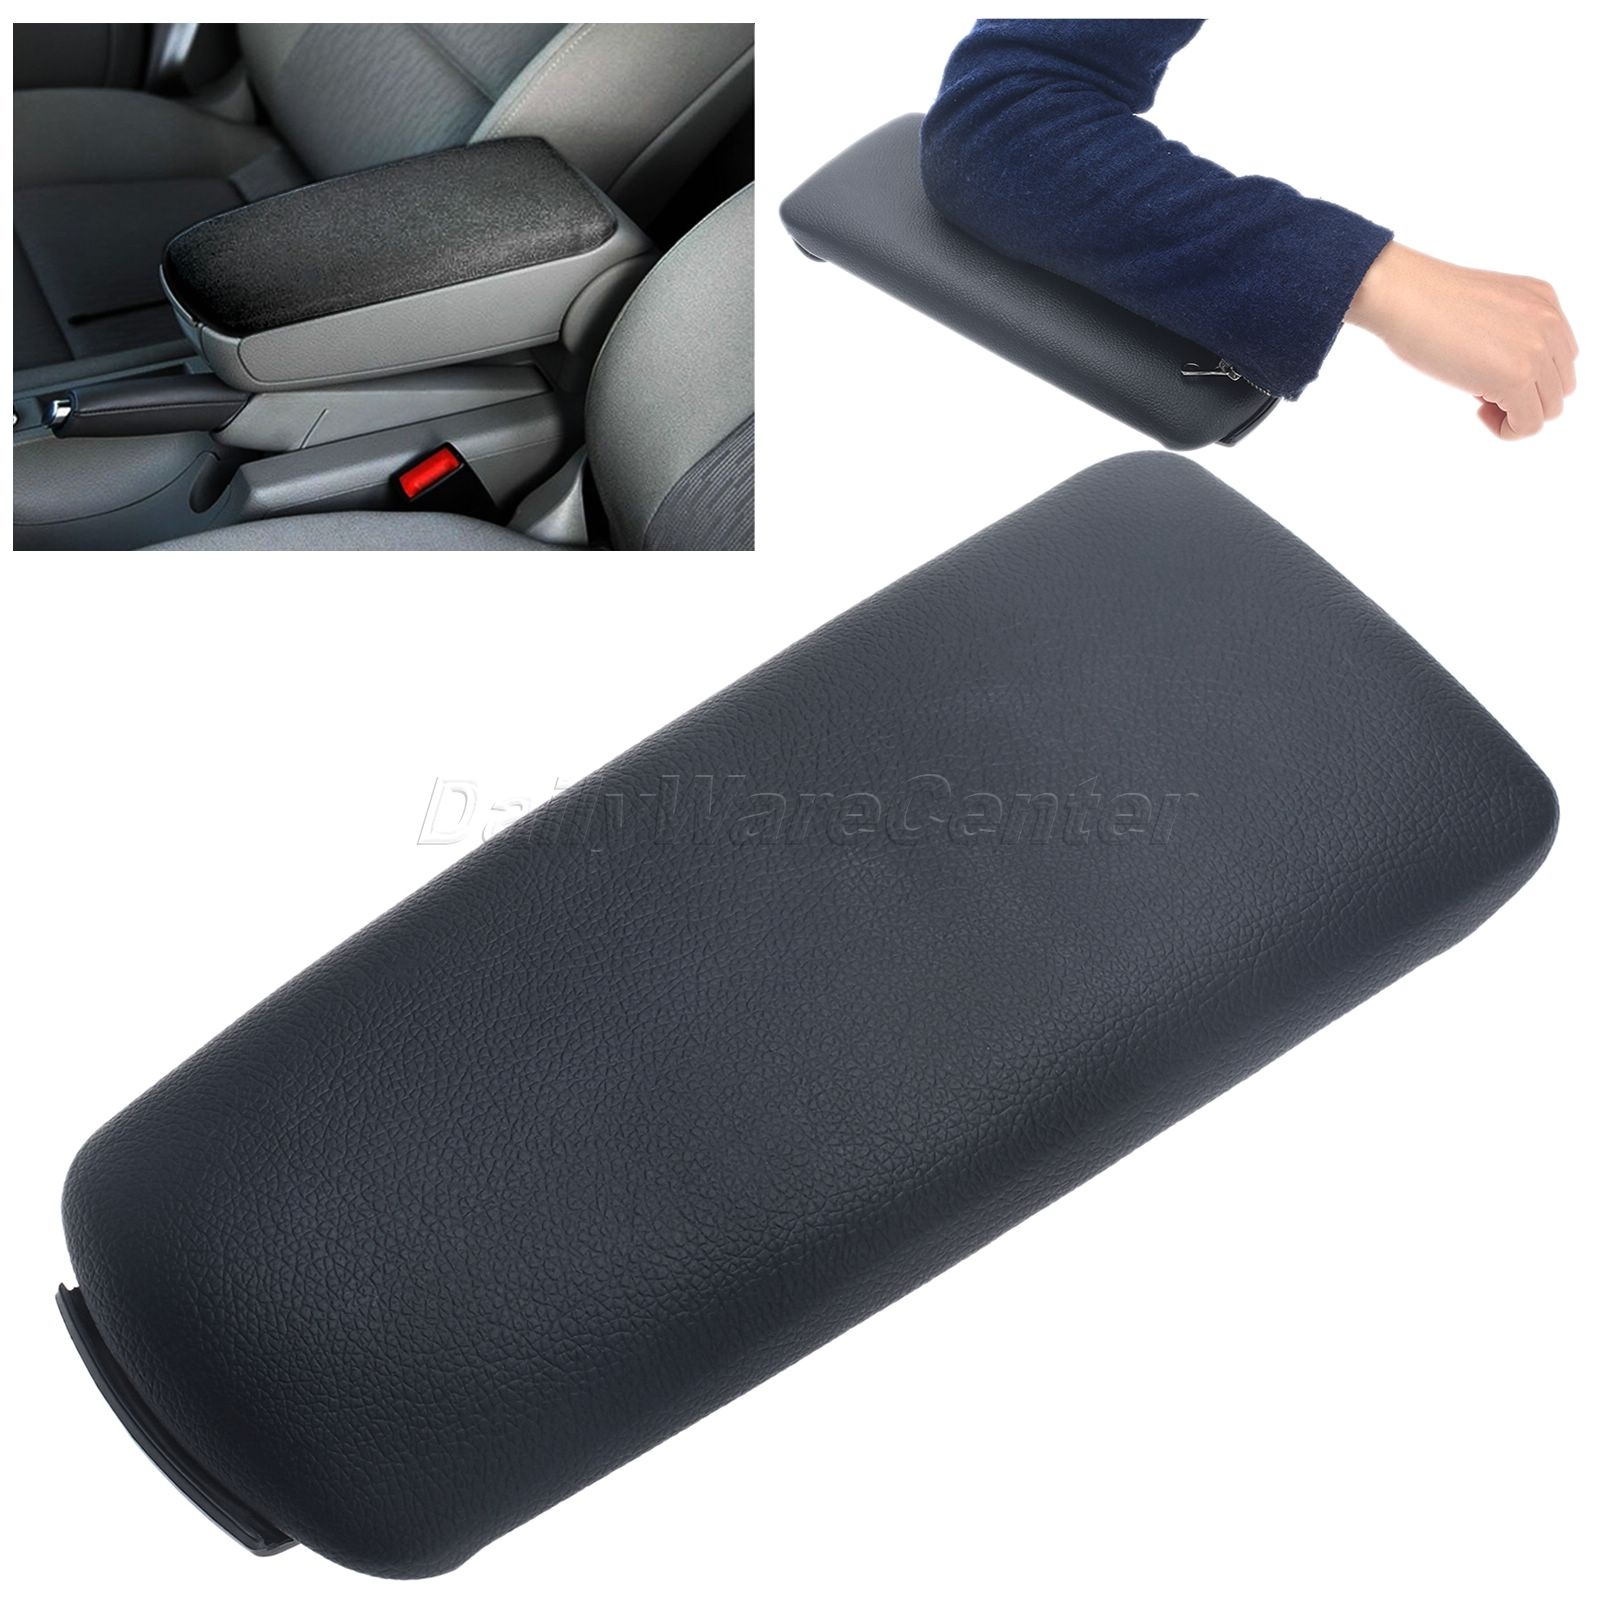 Black PU Leather Armrests Console Lid Cover Arm Rest Center Car-Covers Car Styling For Audi A4(B6 B7) Quattro Wagon Convertible leather center console armrest cover lid fit for audi a4 b6 b7 2002 2003 2004 2005 2006 2007